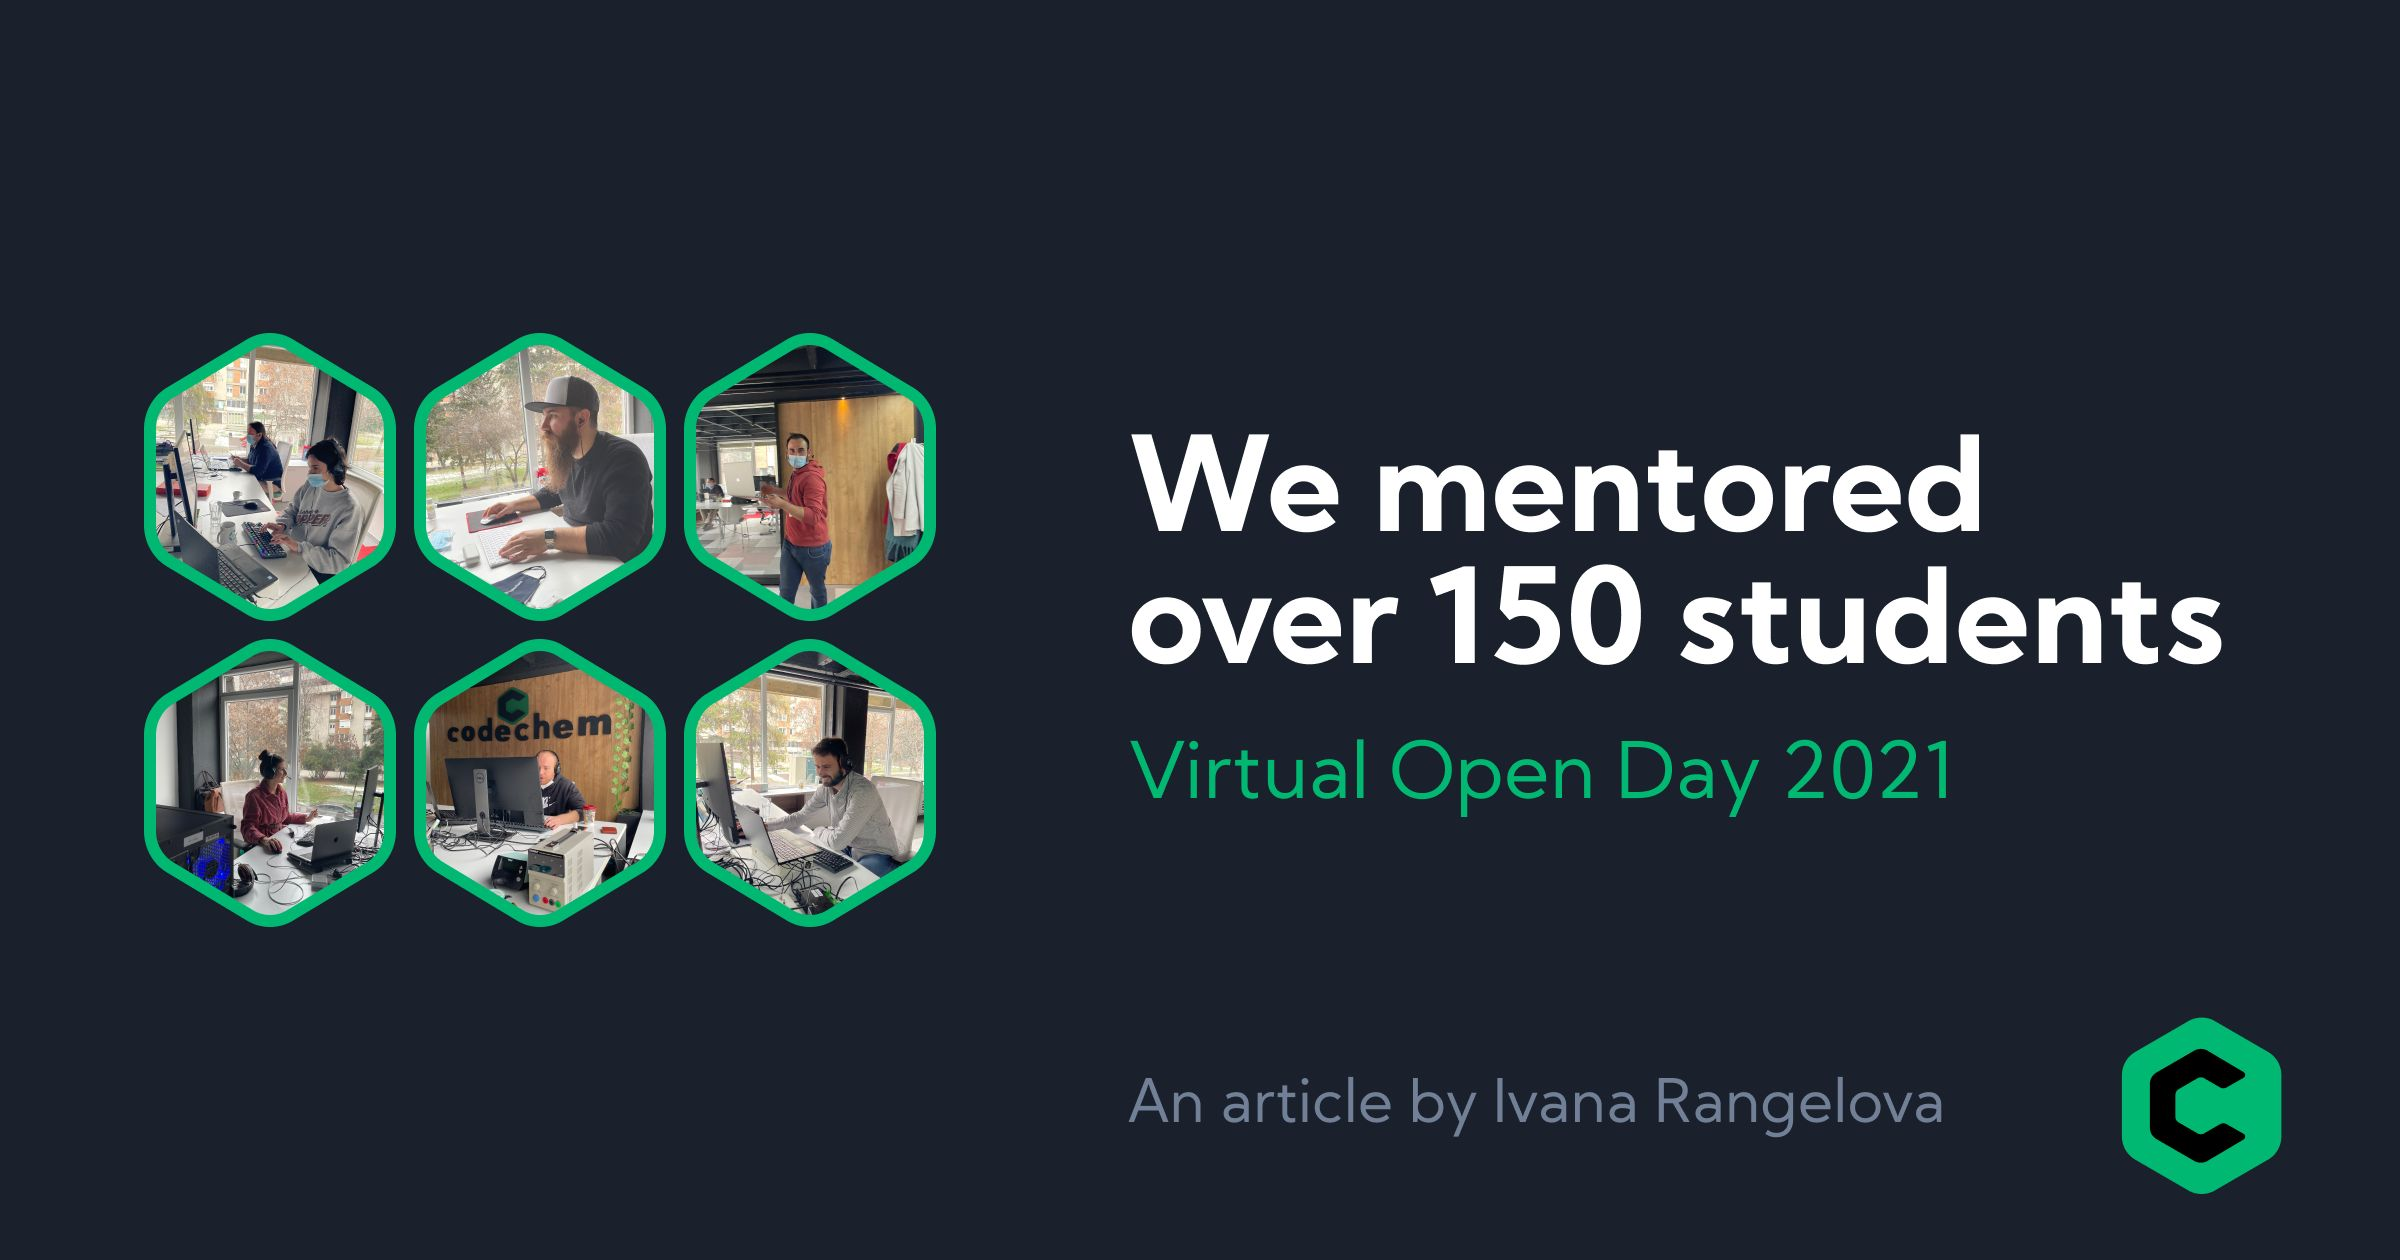 /virtual-open-day-2021-mentoring-over-150-brilliant-students-virtually-g0j330v feature image